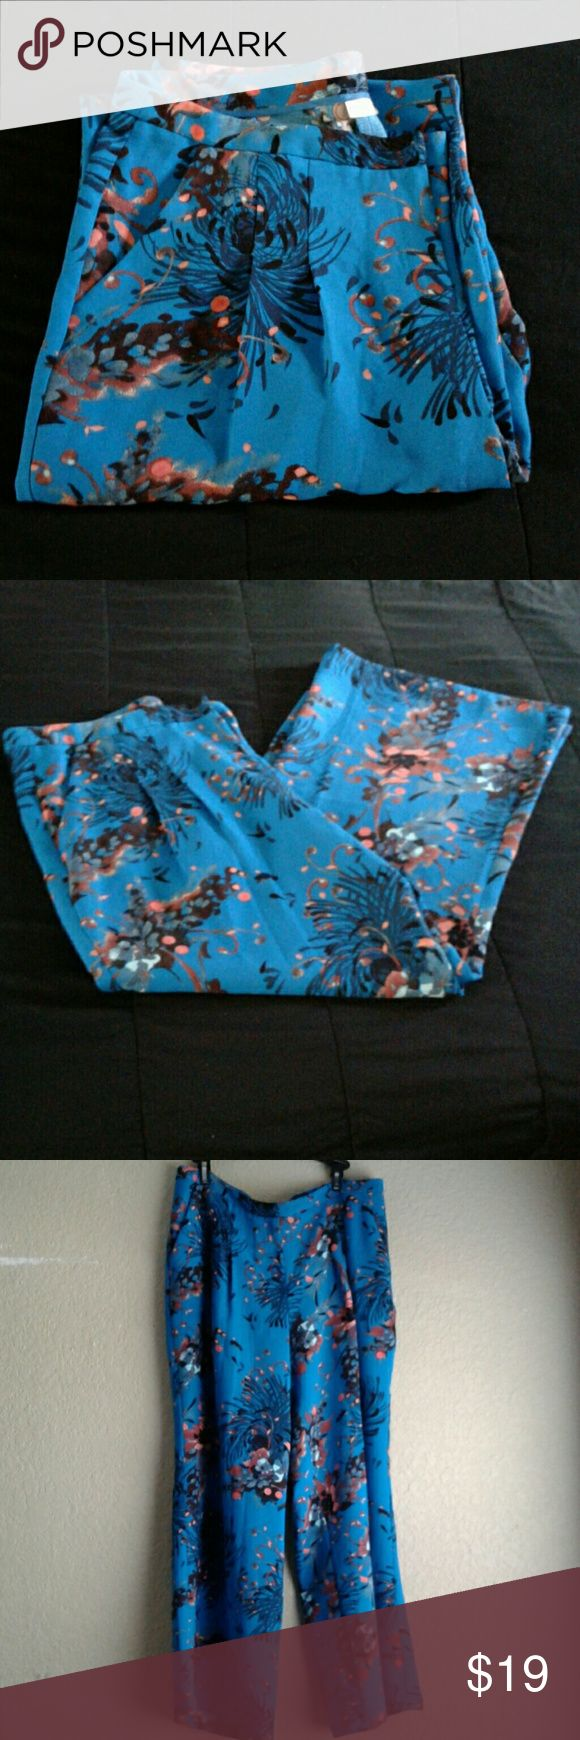 EVA MENDES NY & CO. PANTS Turquoise pants with bold colors petal design made by Eva Mendes. Great Condition wore once New York & Company Pants Trousers